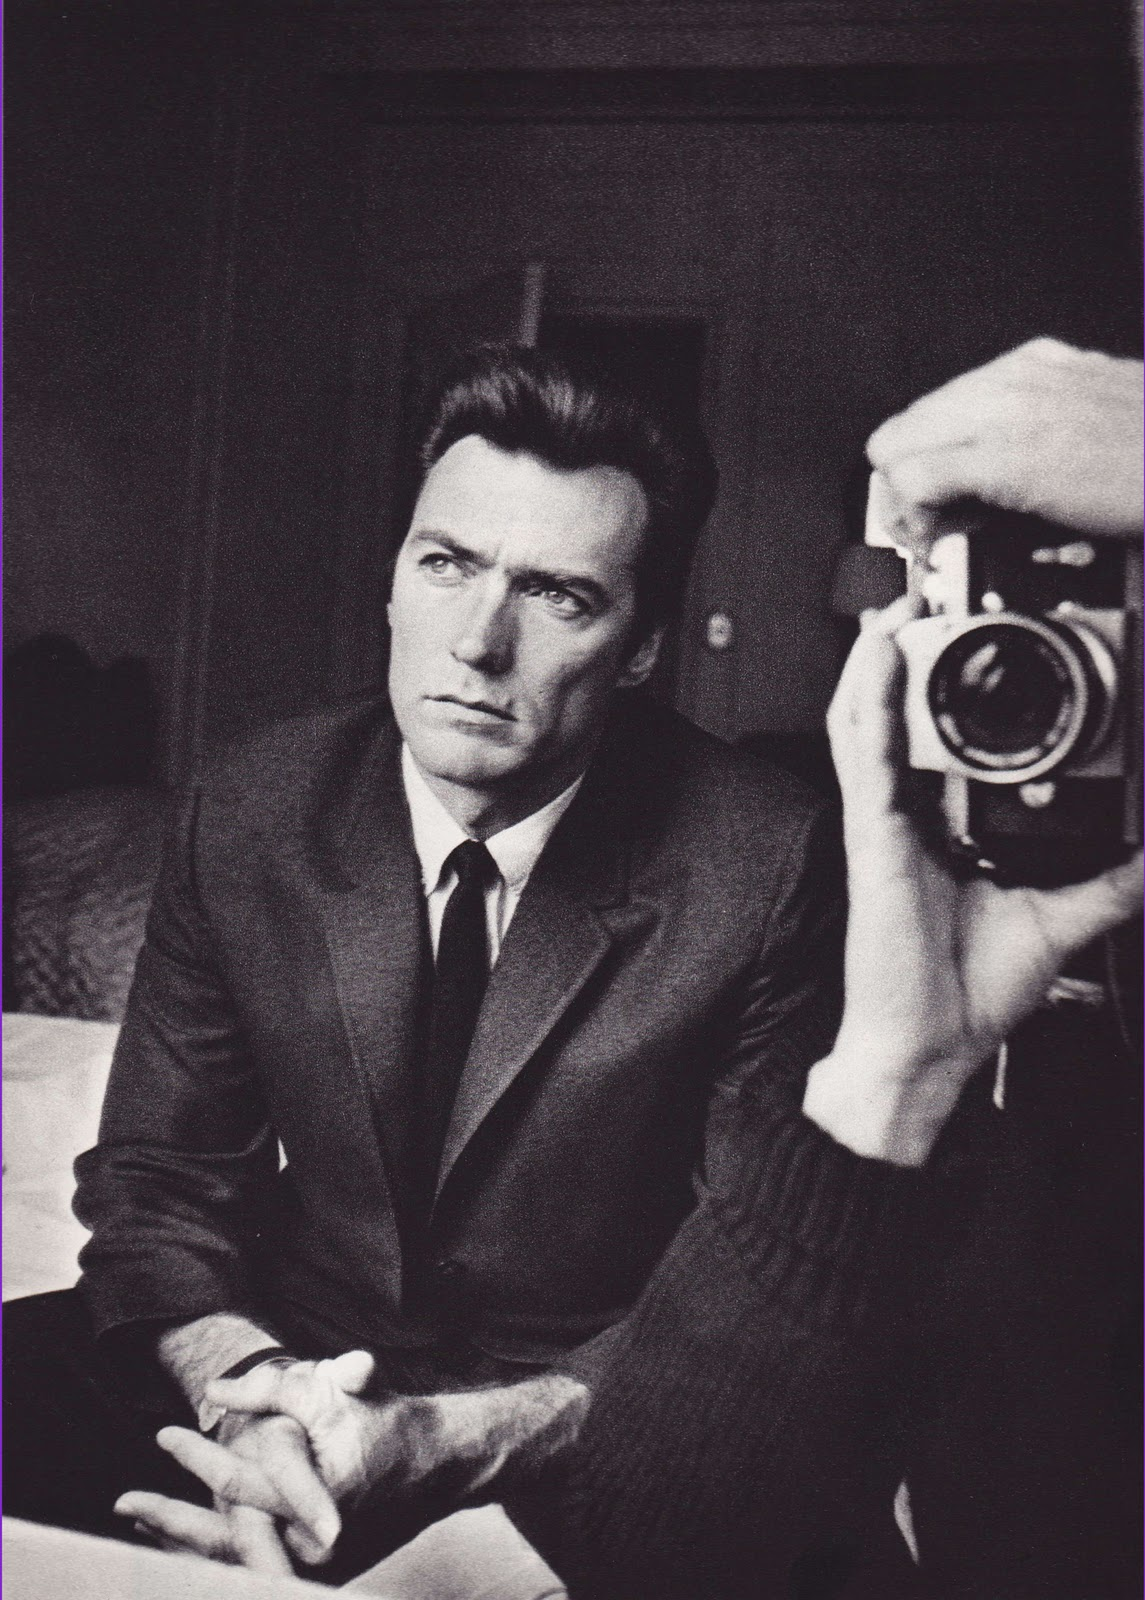 Clint Eastwood and Duane Michals.